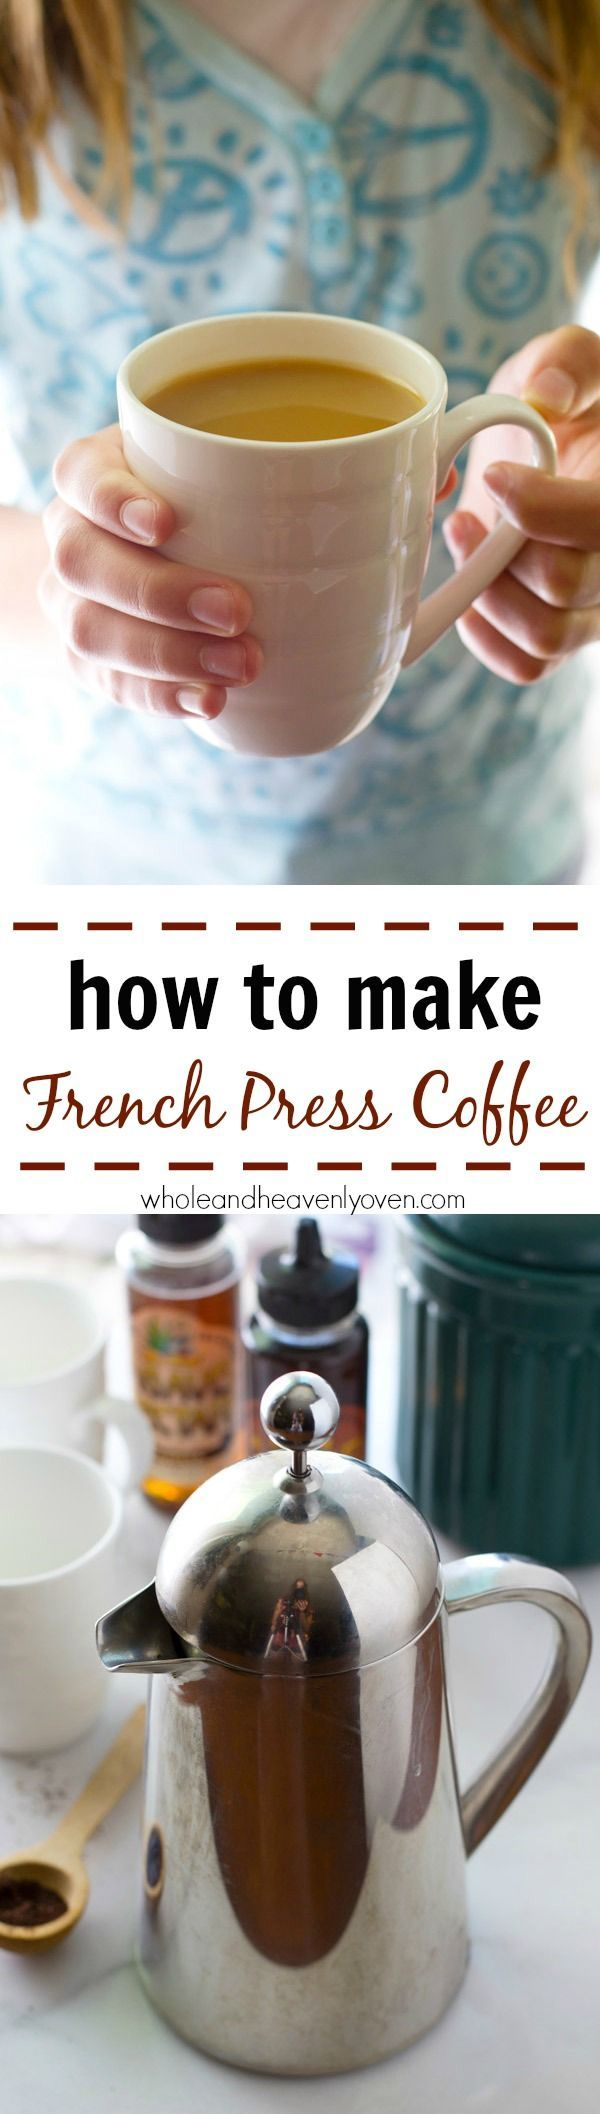 Learn how easy it is to make the perfect cup of french press coffee! Step-by-step photos included.